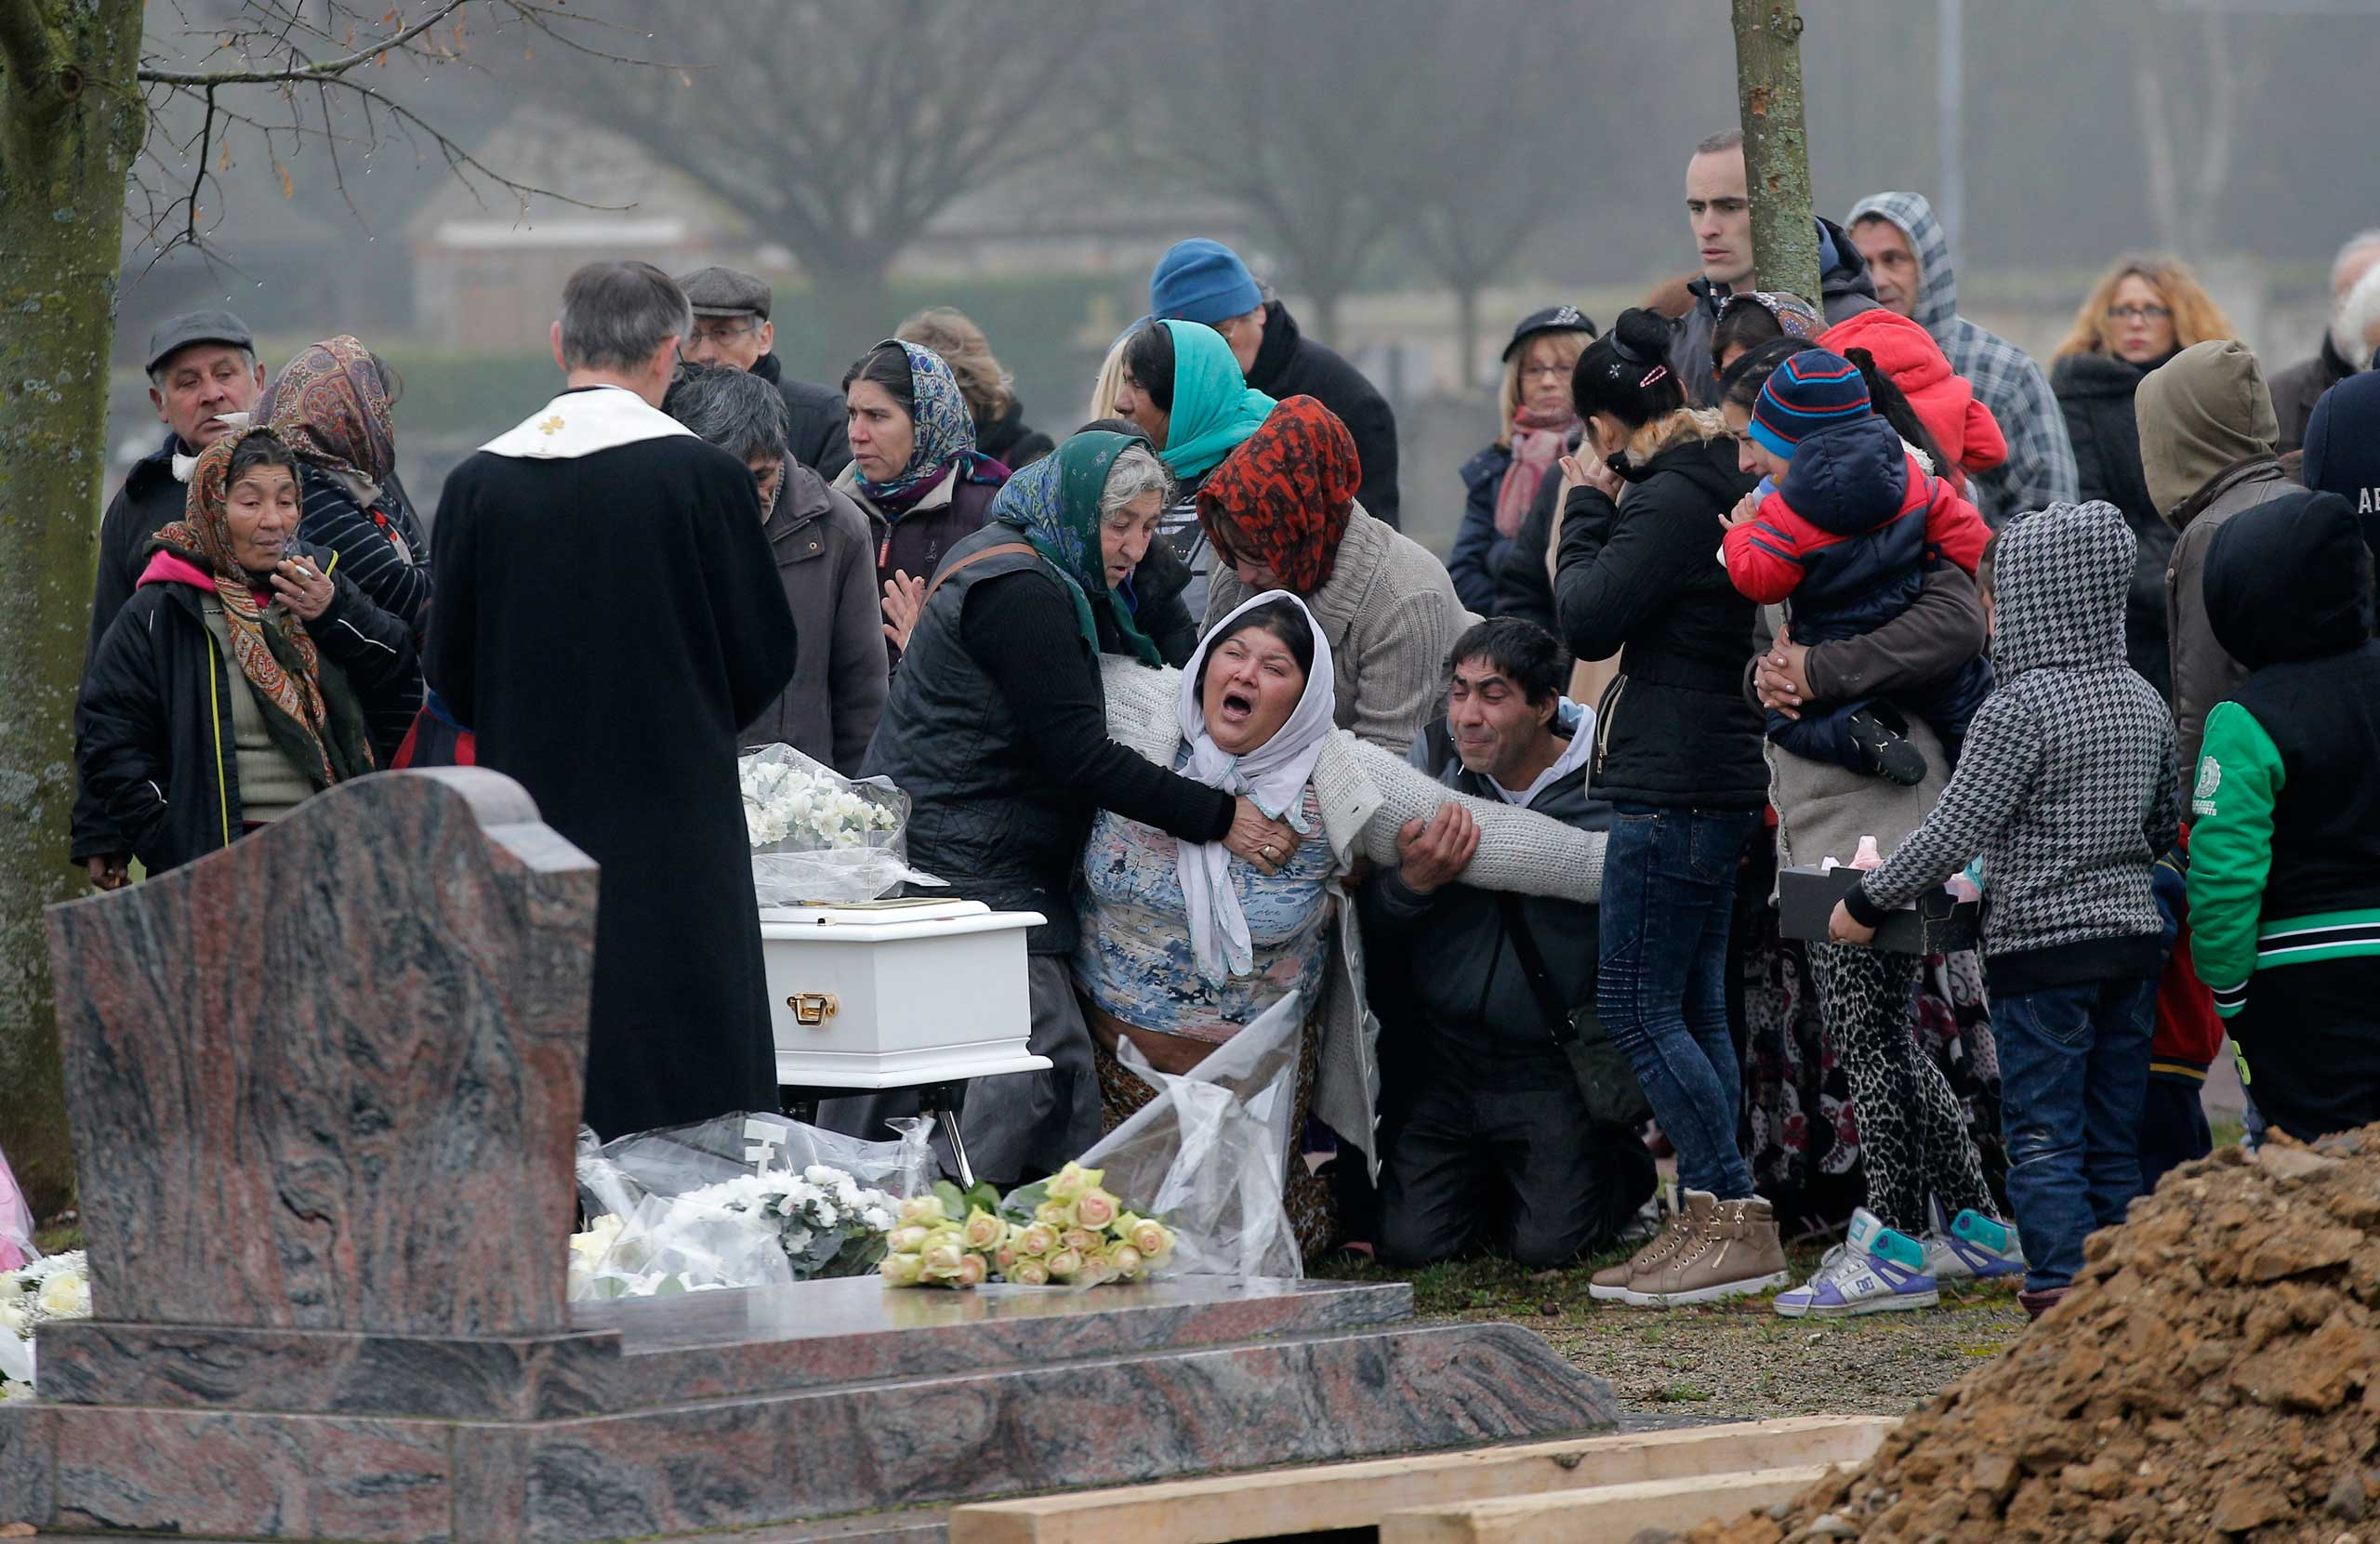 Jan. 5, 2015. The mother of Maria Francesca, who died of sudden infant death syndrome, cries in front of the coffin of her baby during the funeral in Wissous, outside Paris.